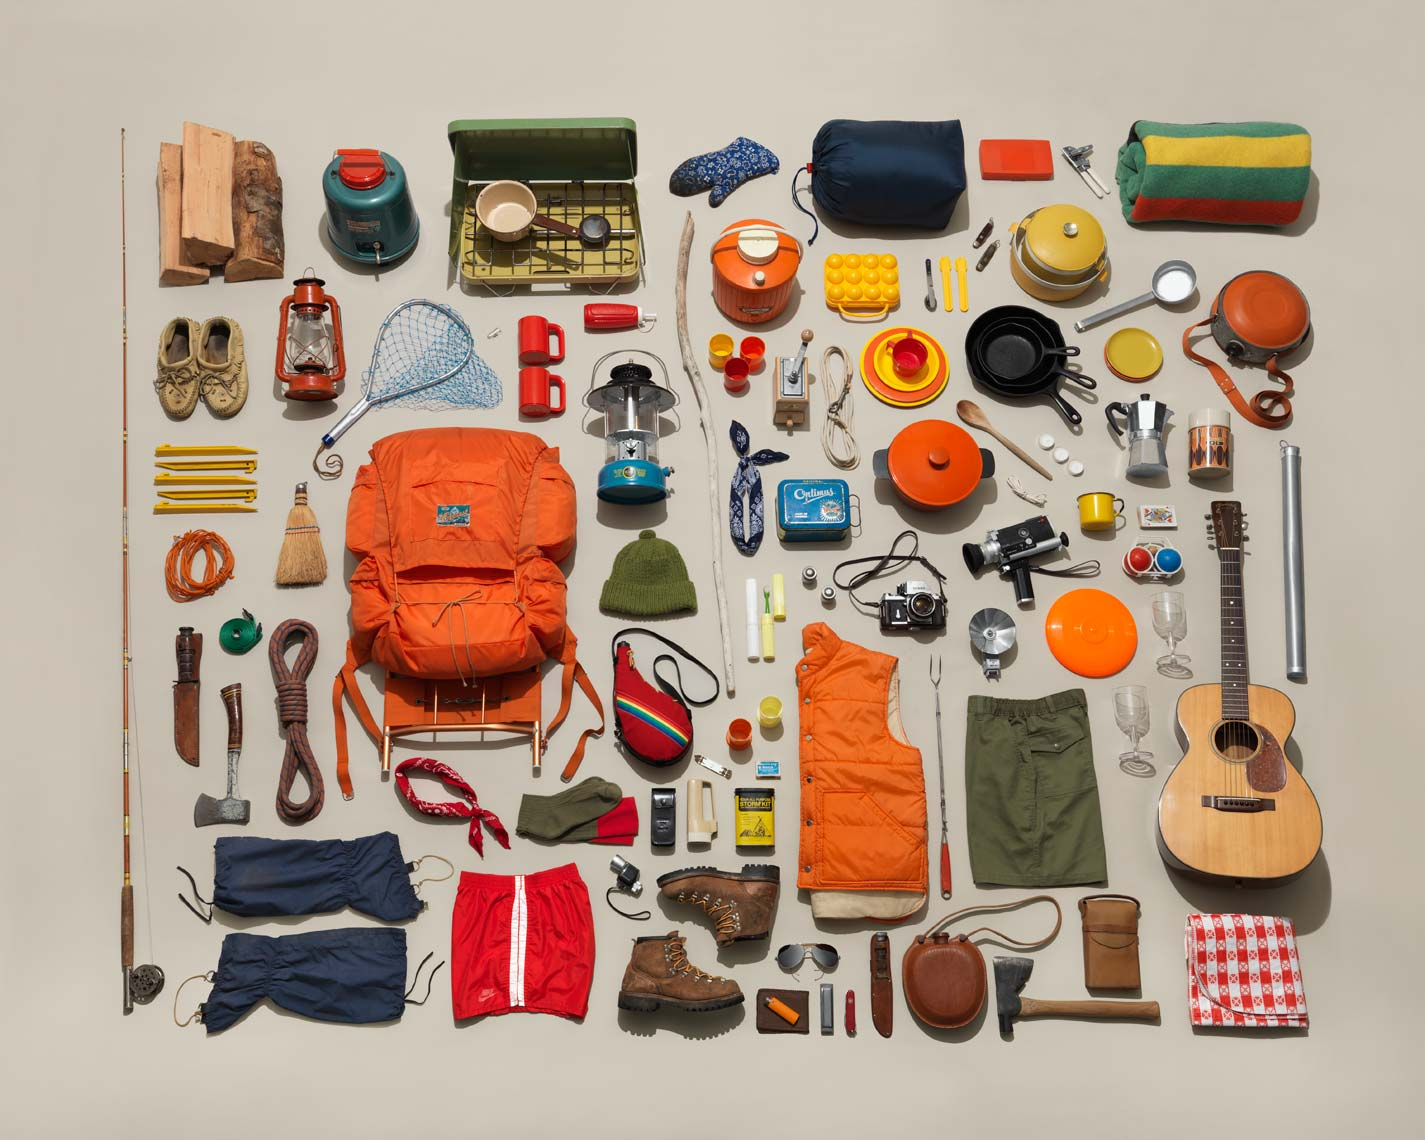 Camping_Organized_Neatly